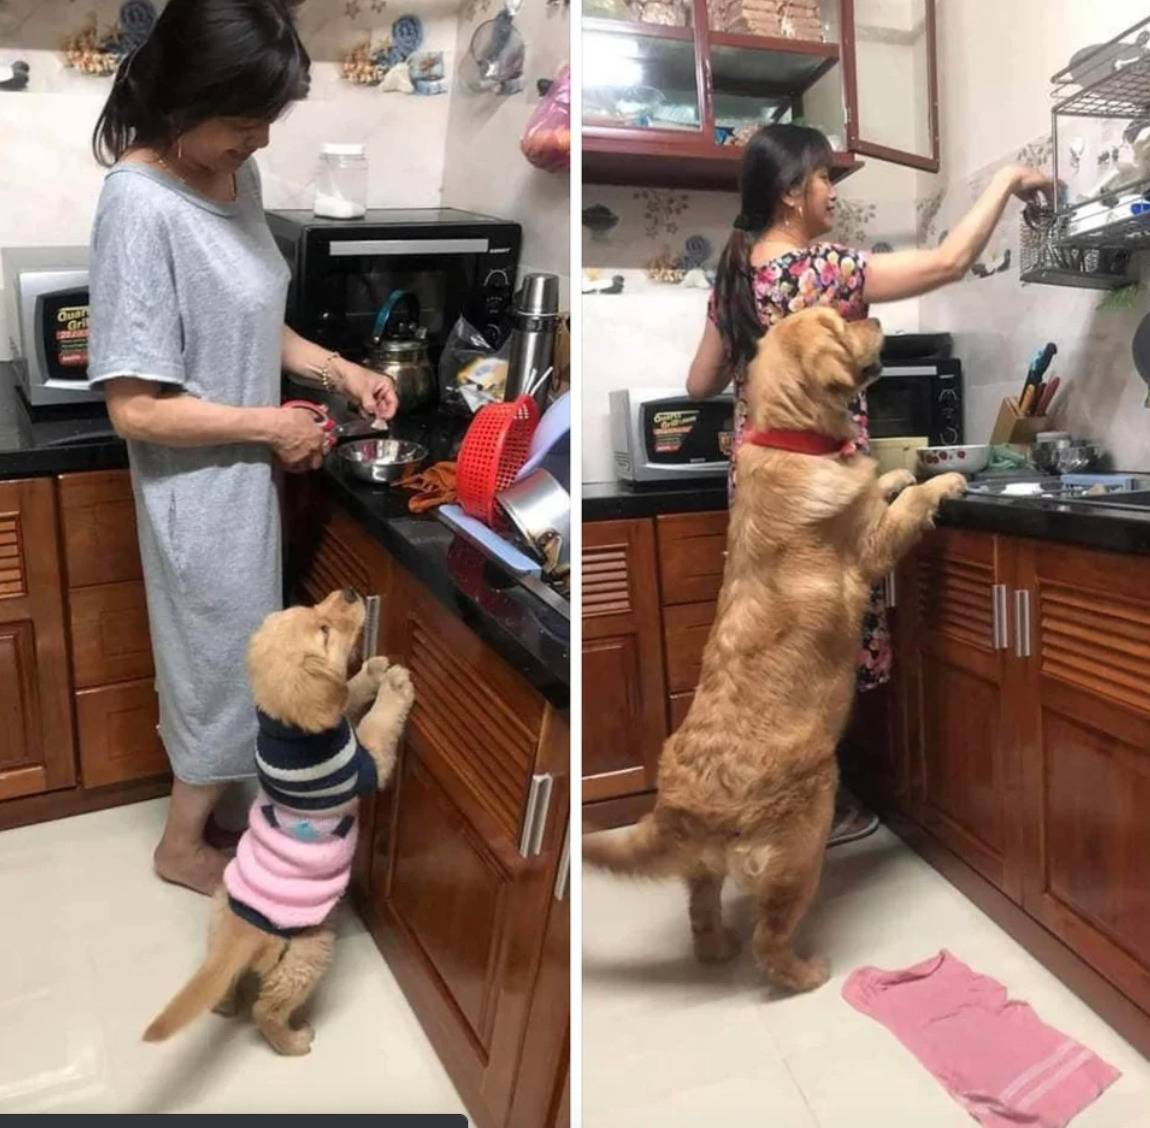 photo of dog trying to look at food on kitchen counter as puppy and adult